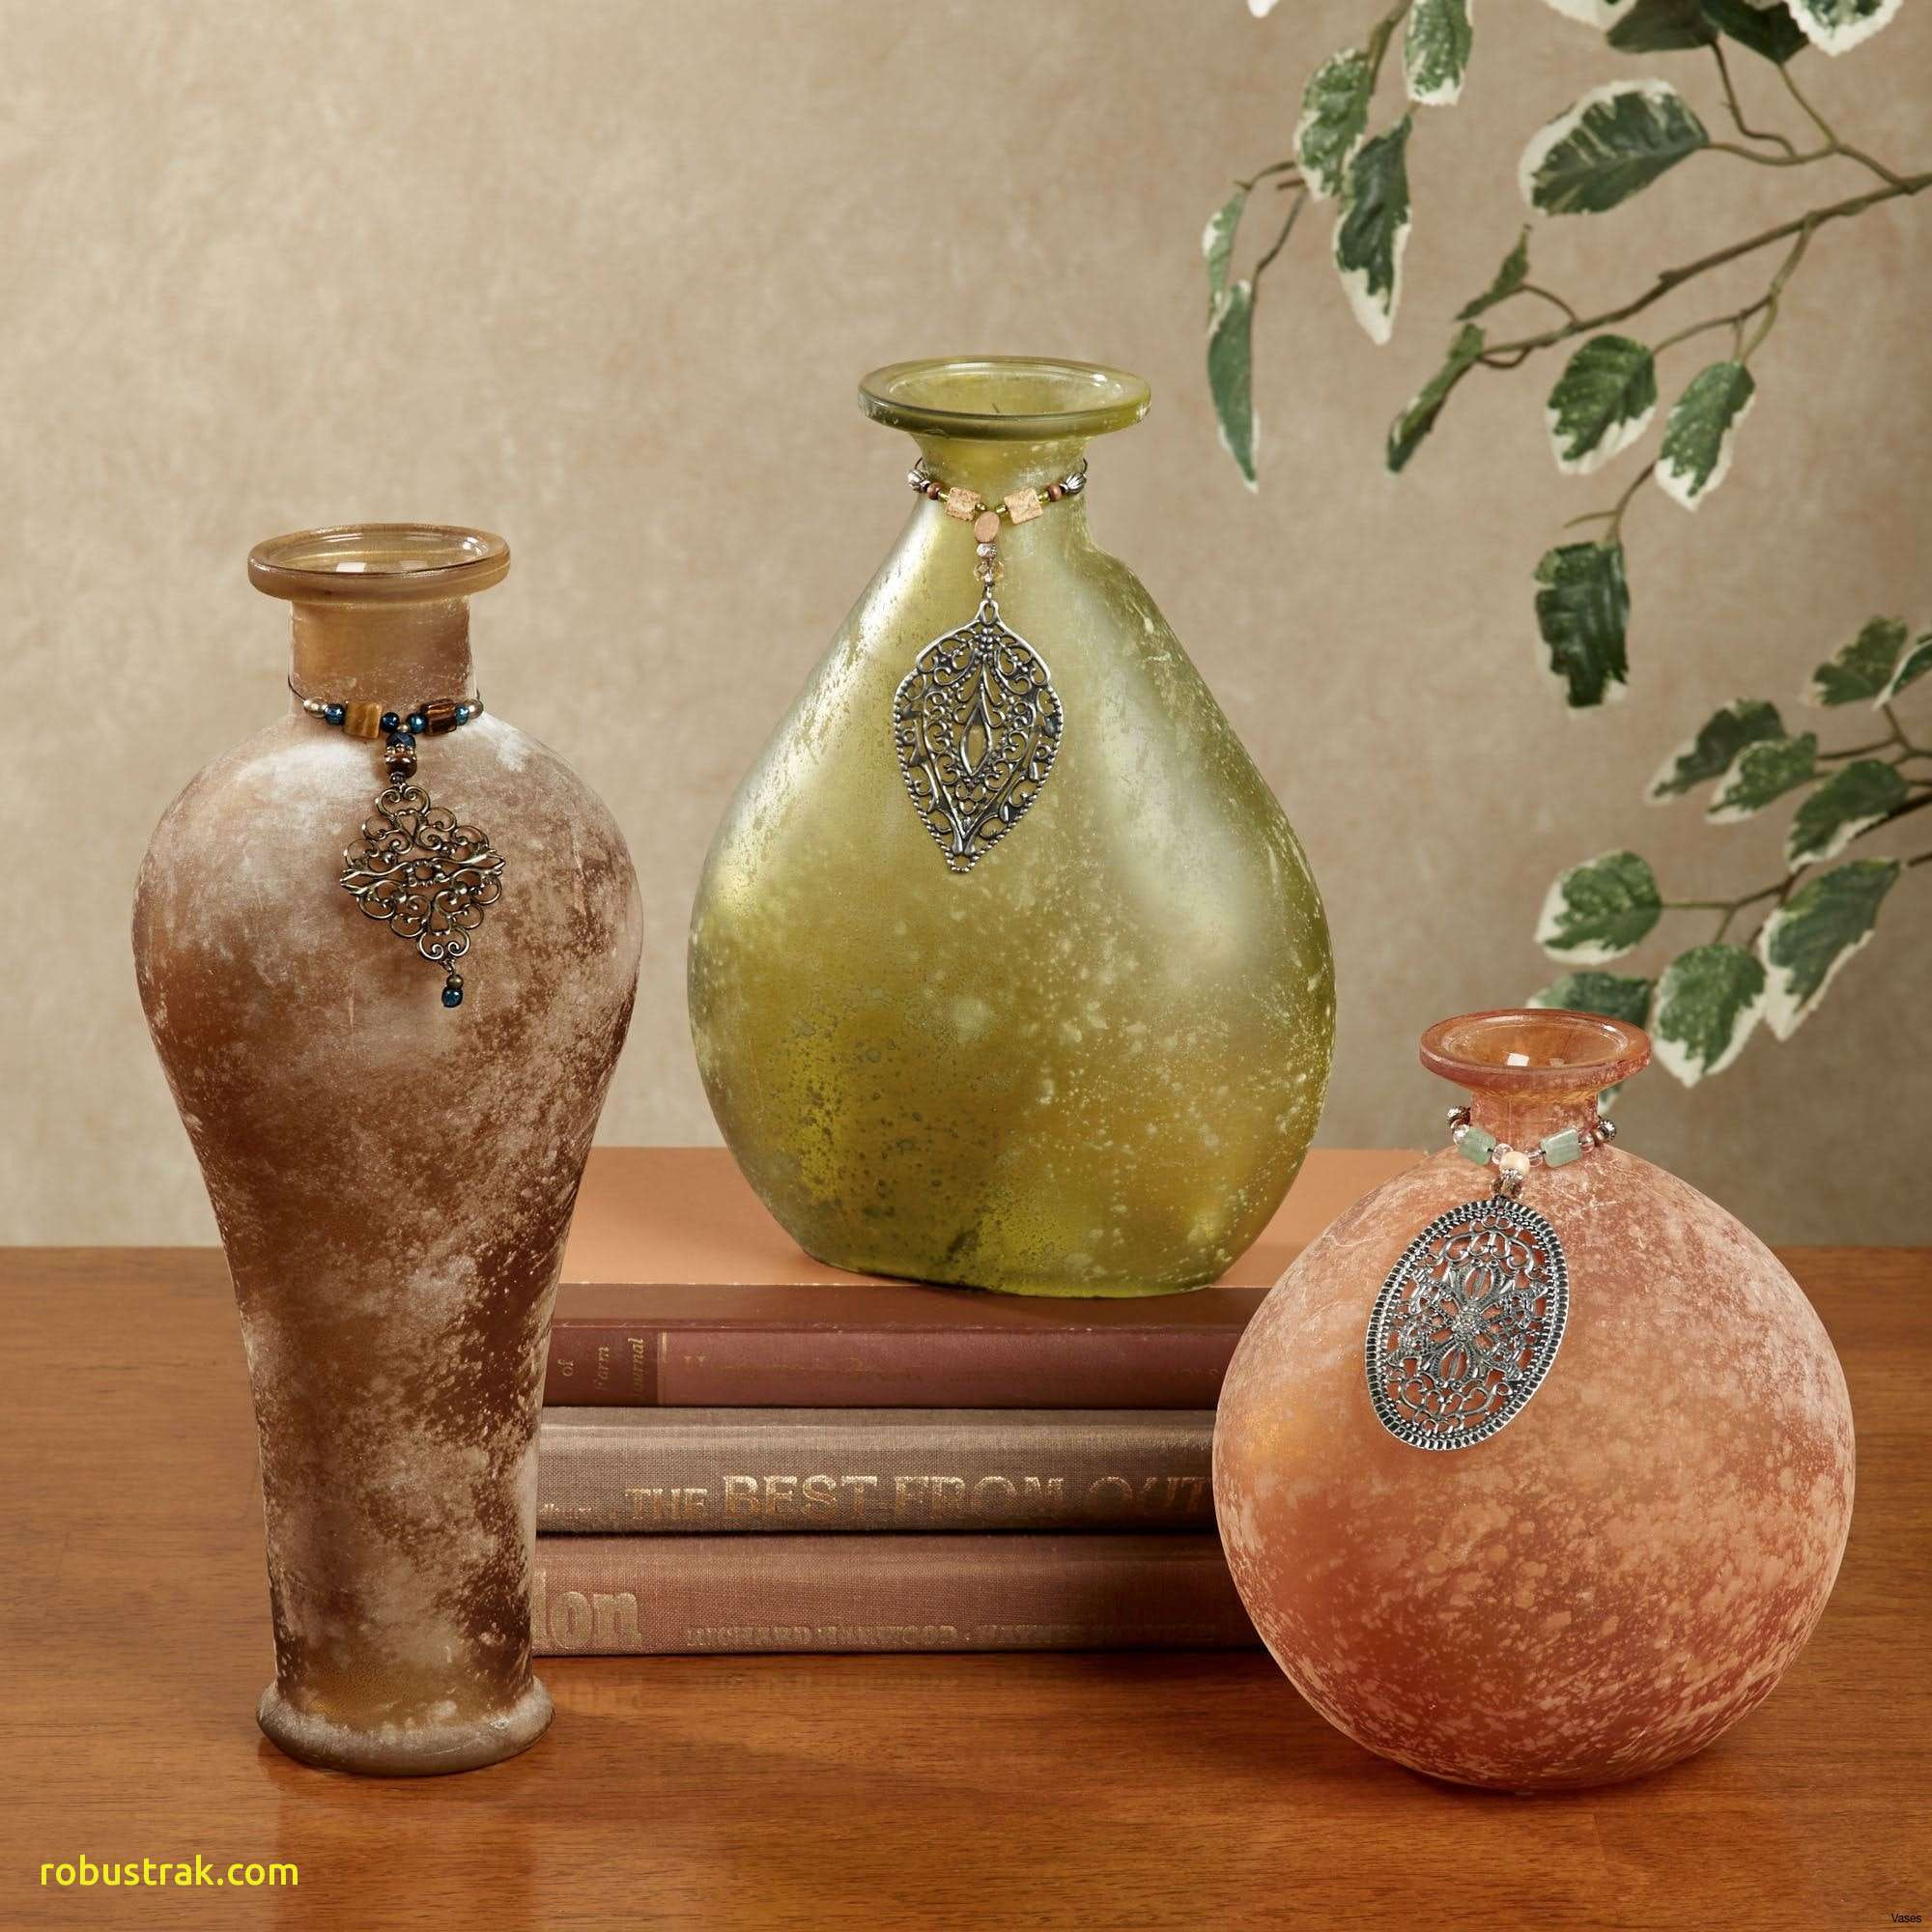 contemporary floor vases of awesome decorative vases for living room home design ideas for 2015 new promotion s floor vase decorativeh vases decorative set flower vasos decorativos modern fashion brief